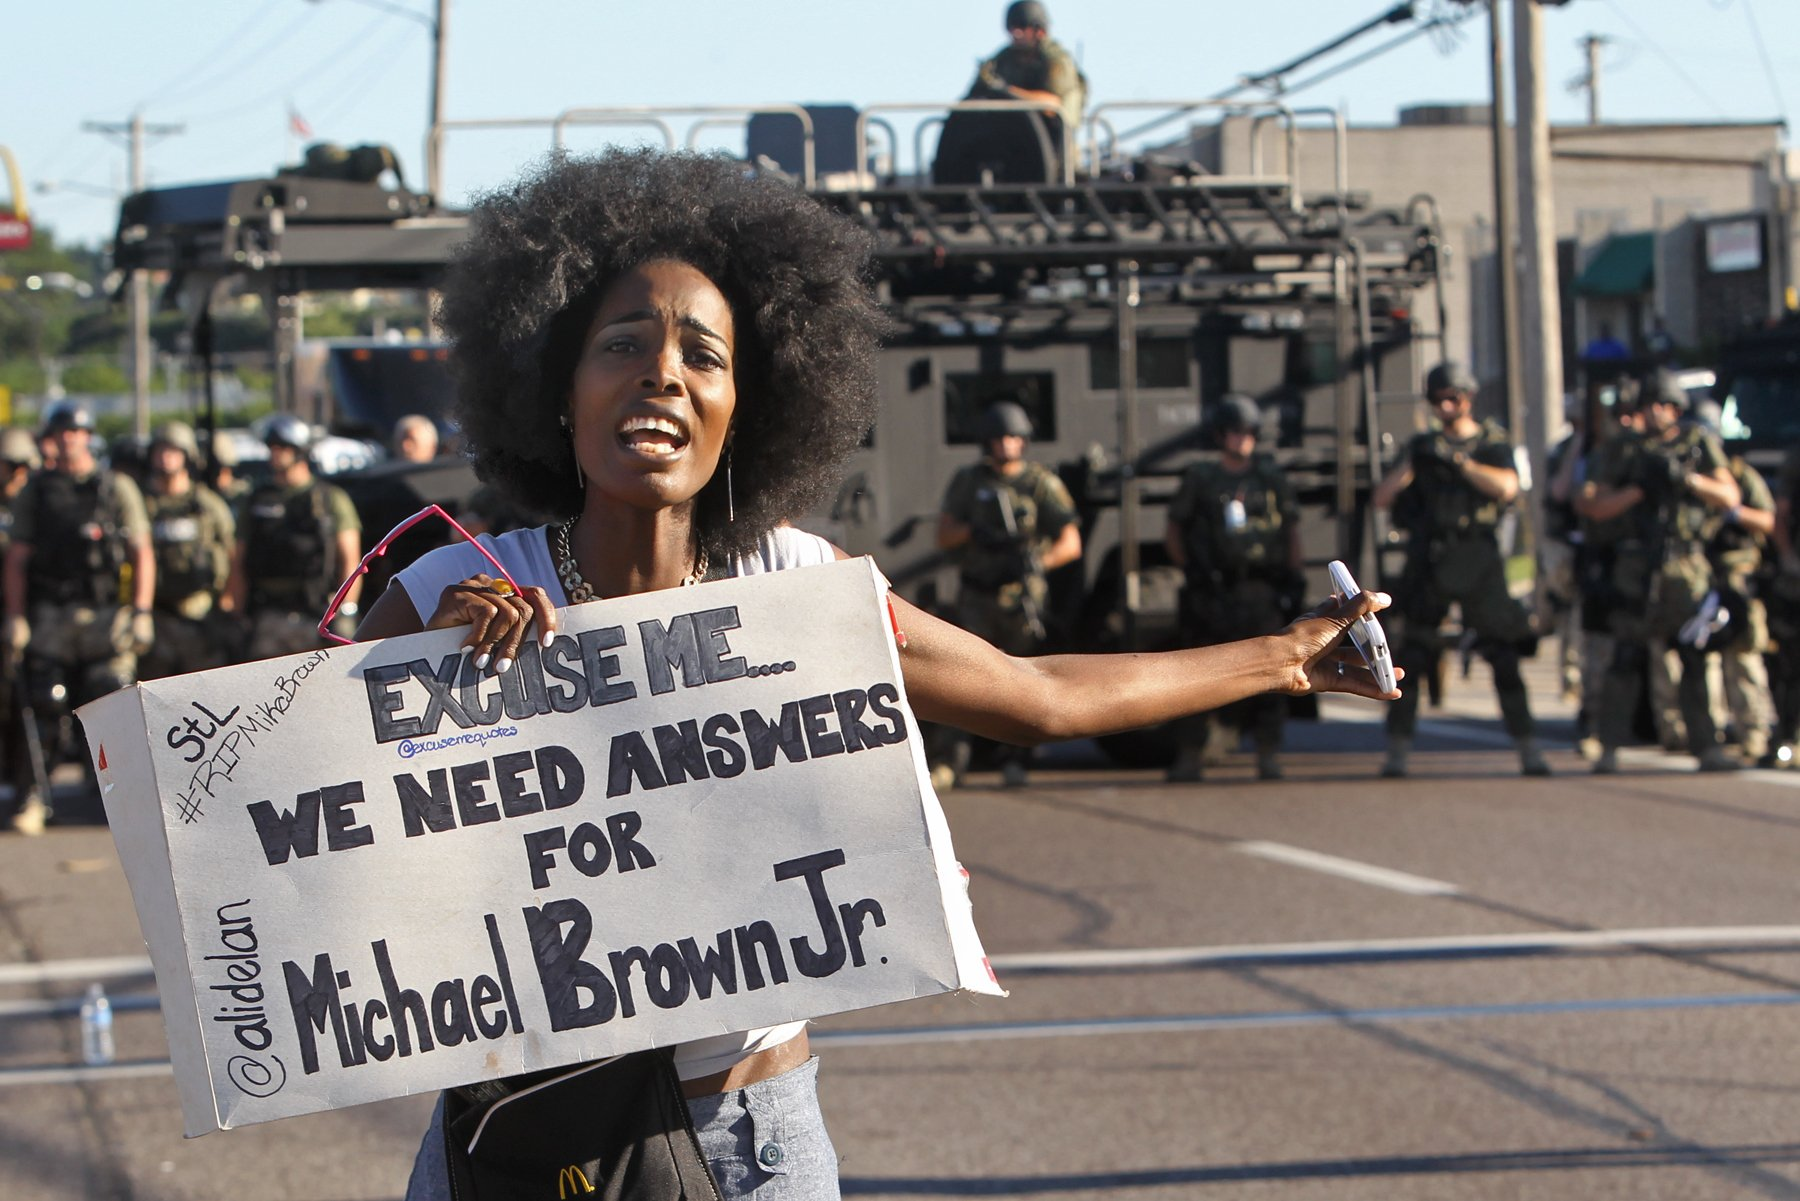 A protester shouts as she moved down W. Florissant Avenue away from the line of riot police in Ferguson on Wednesday, Aug. 13, 2014. Photo by J.B. Forbes.